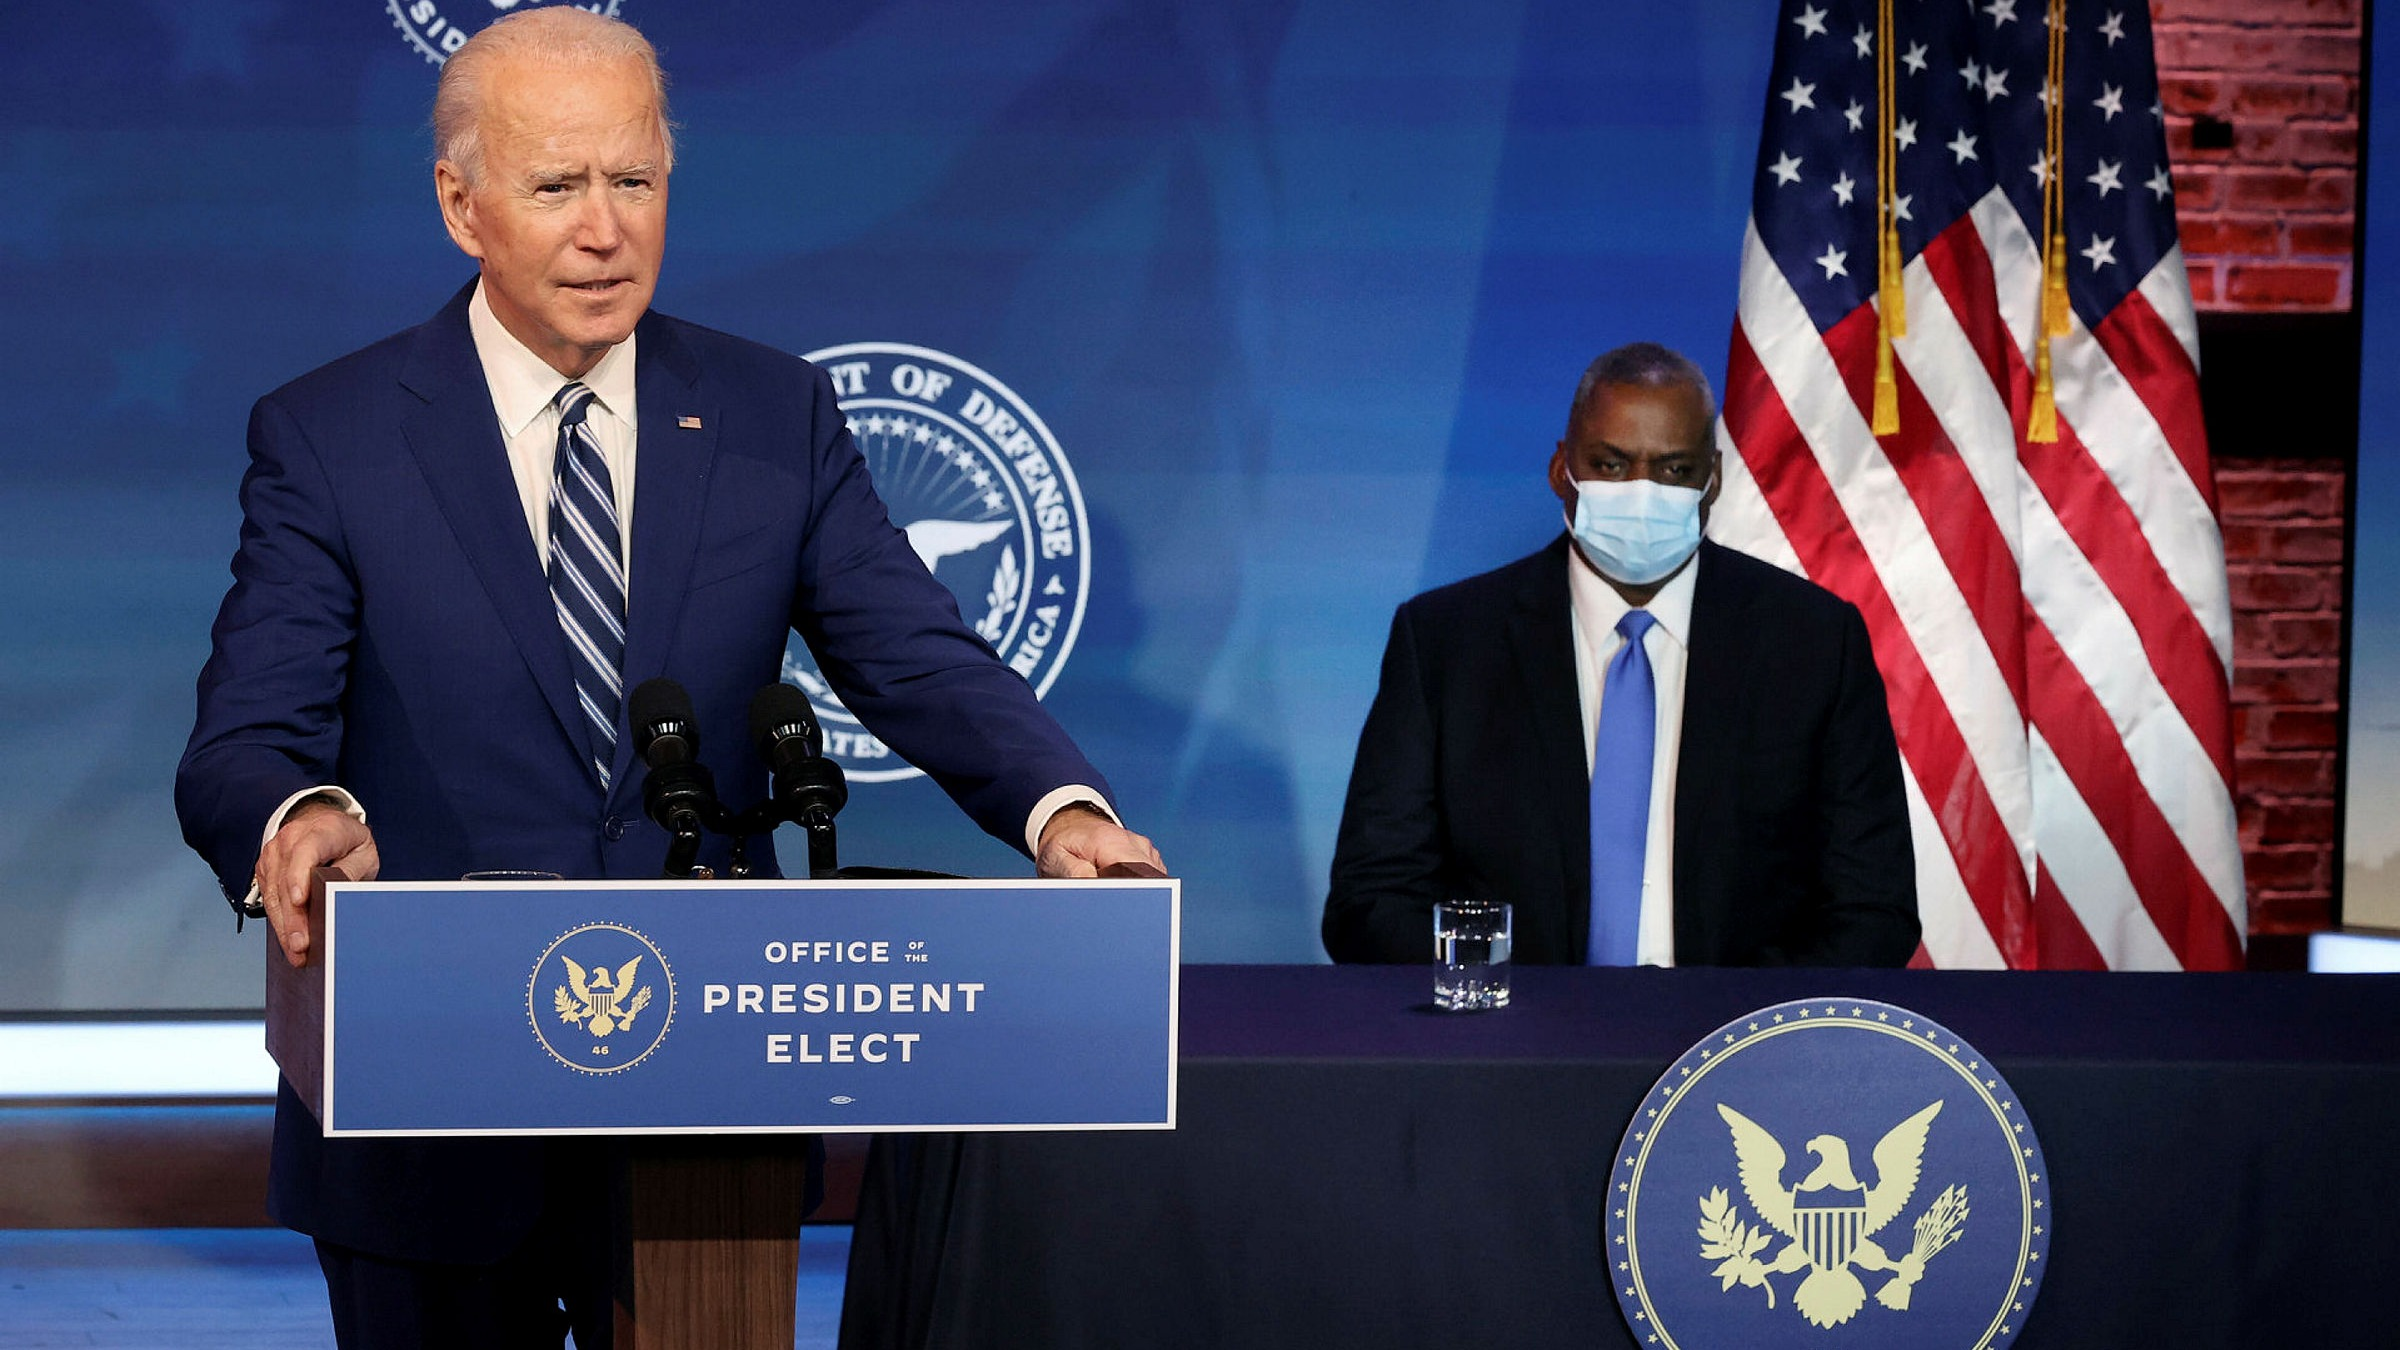 Joe Biden Defends Lloyd Austin As Right Choice For This Moment Financial Times